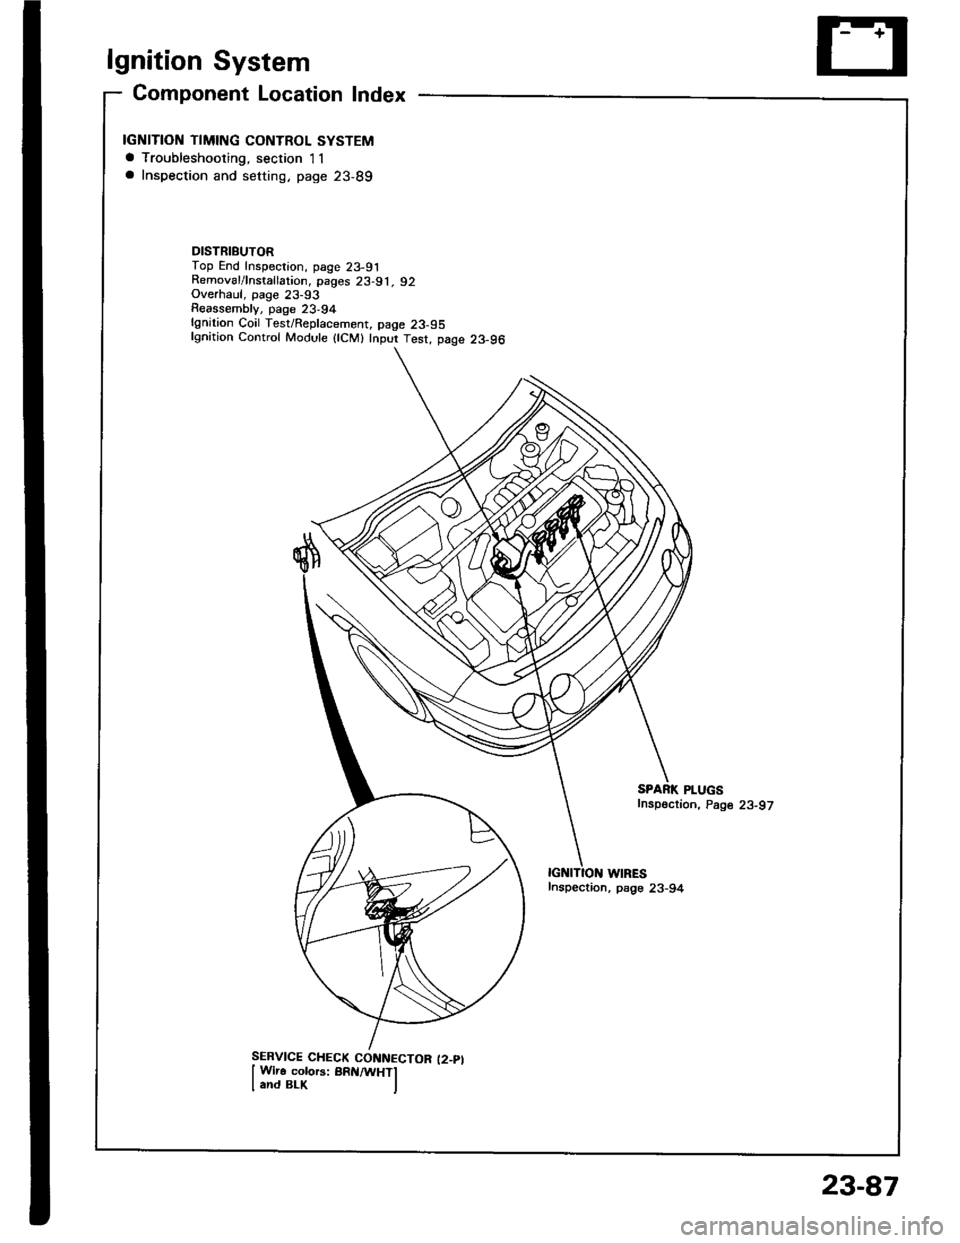 Honda Integra 1994 4g Workshop Manual 2000 Spark Plug Wiring Diagram